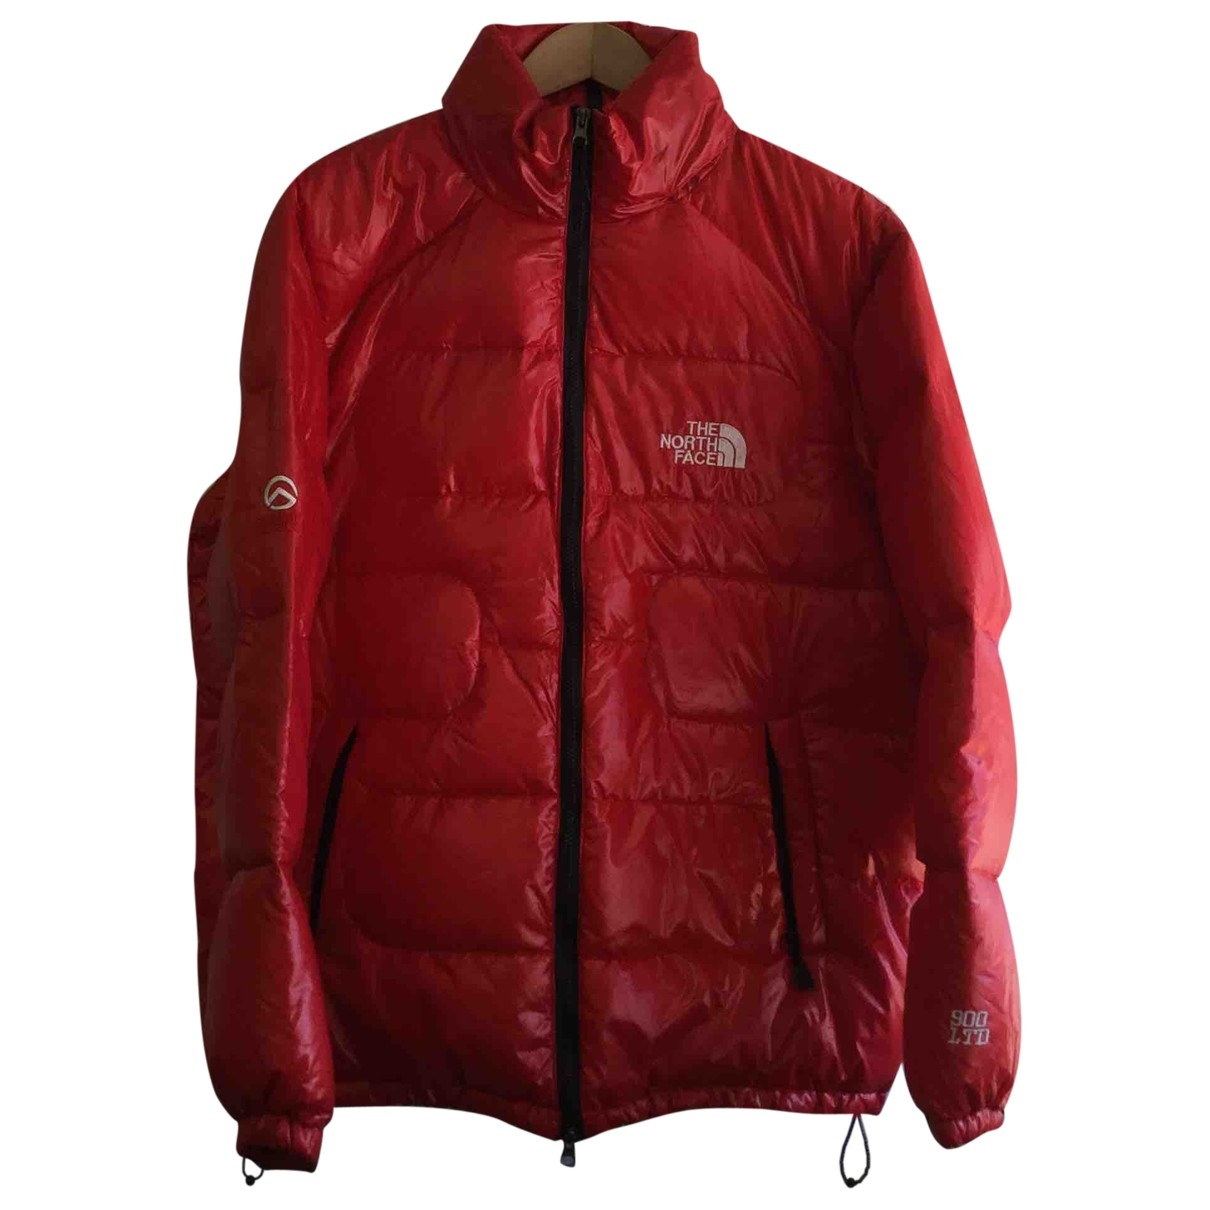 The North Face \N Red coat for Women L International